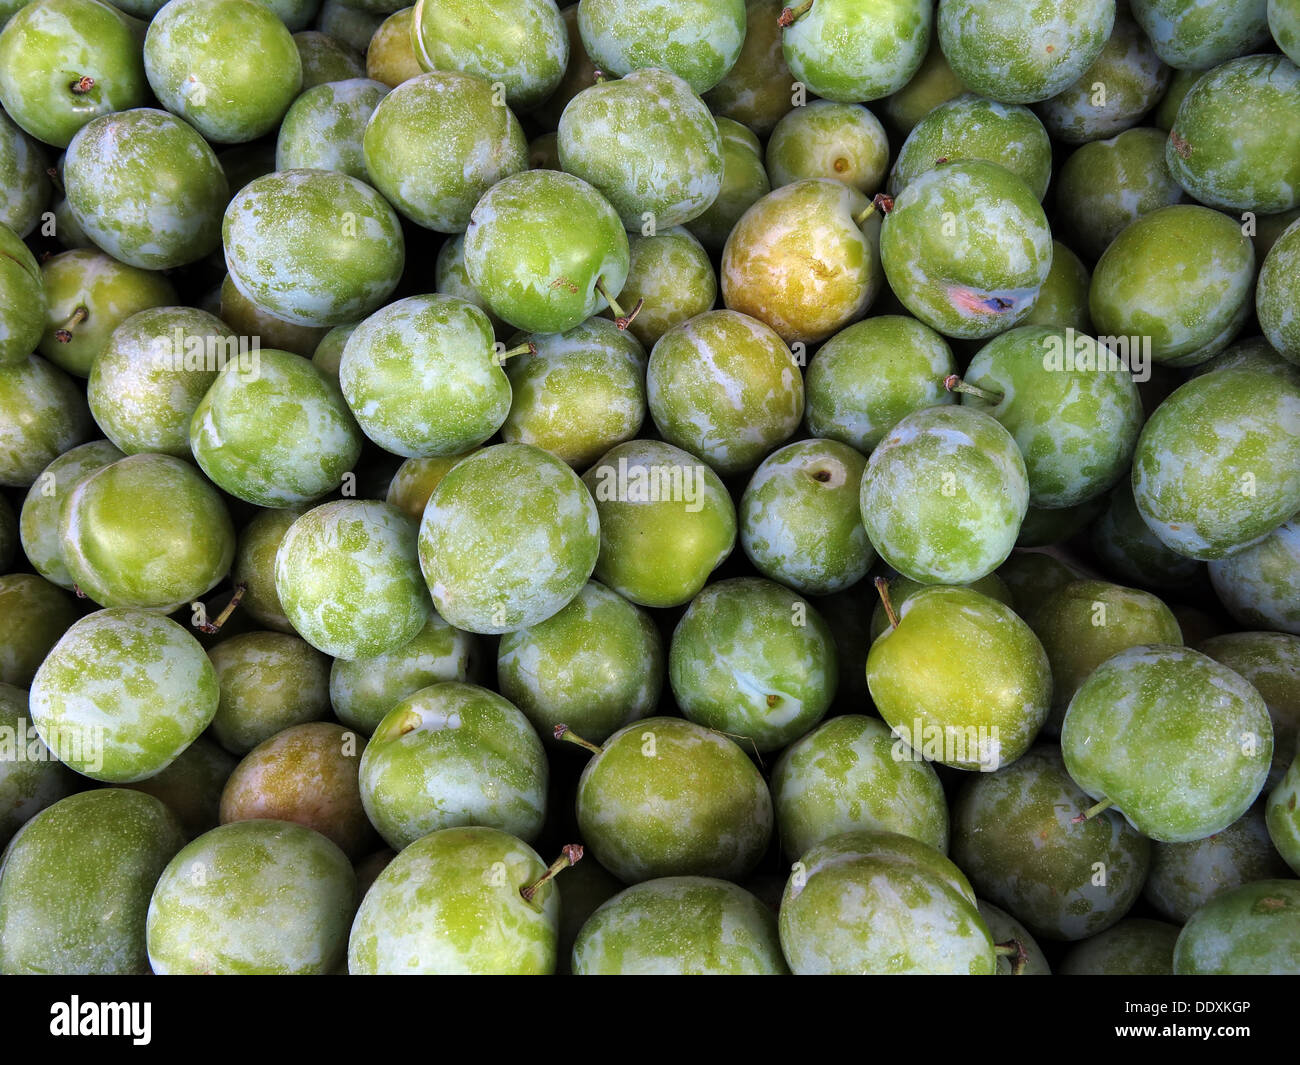 fruity,traditional,autumn,summer,English,British,dozens,hundreds,for,pie,deserts,desert,pies,common,European,plums,cultivar,Reine,Claude,Verte,varieties,Punze,rotunda,variety,gages,la,bonne,reine,Reneklode,or,Ringlotte,organic,gotonysmith,@hotpixuk,hotpixuk,five,a,day,5,5aday,fruit,Buy Pictures of,Buy Images Of,Low Fat Diet,Five A Day